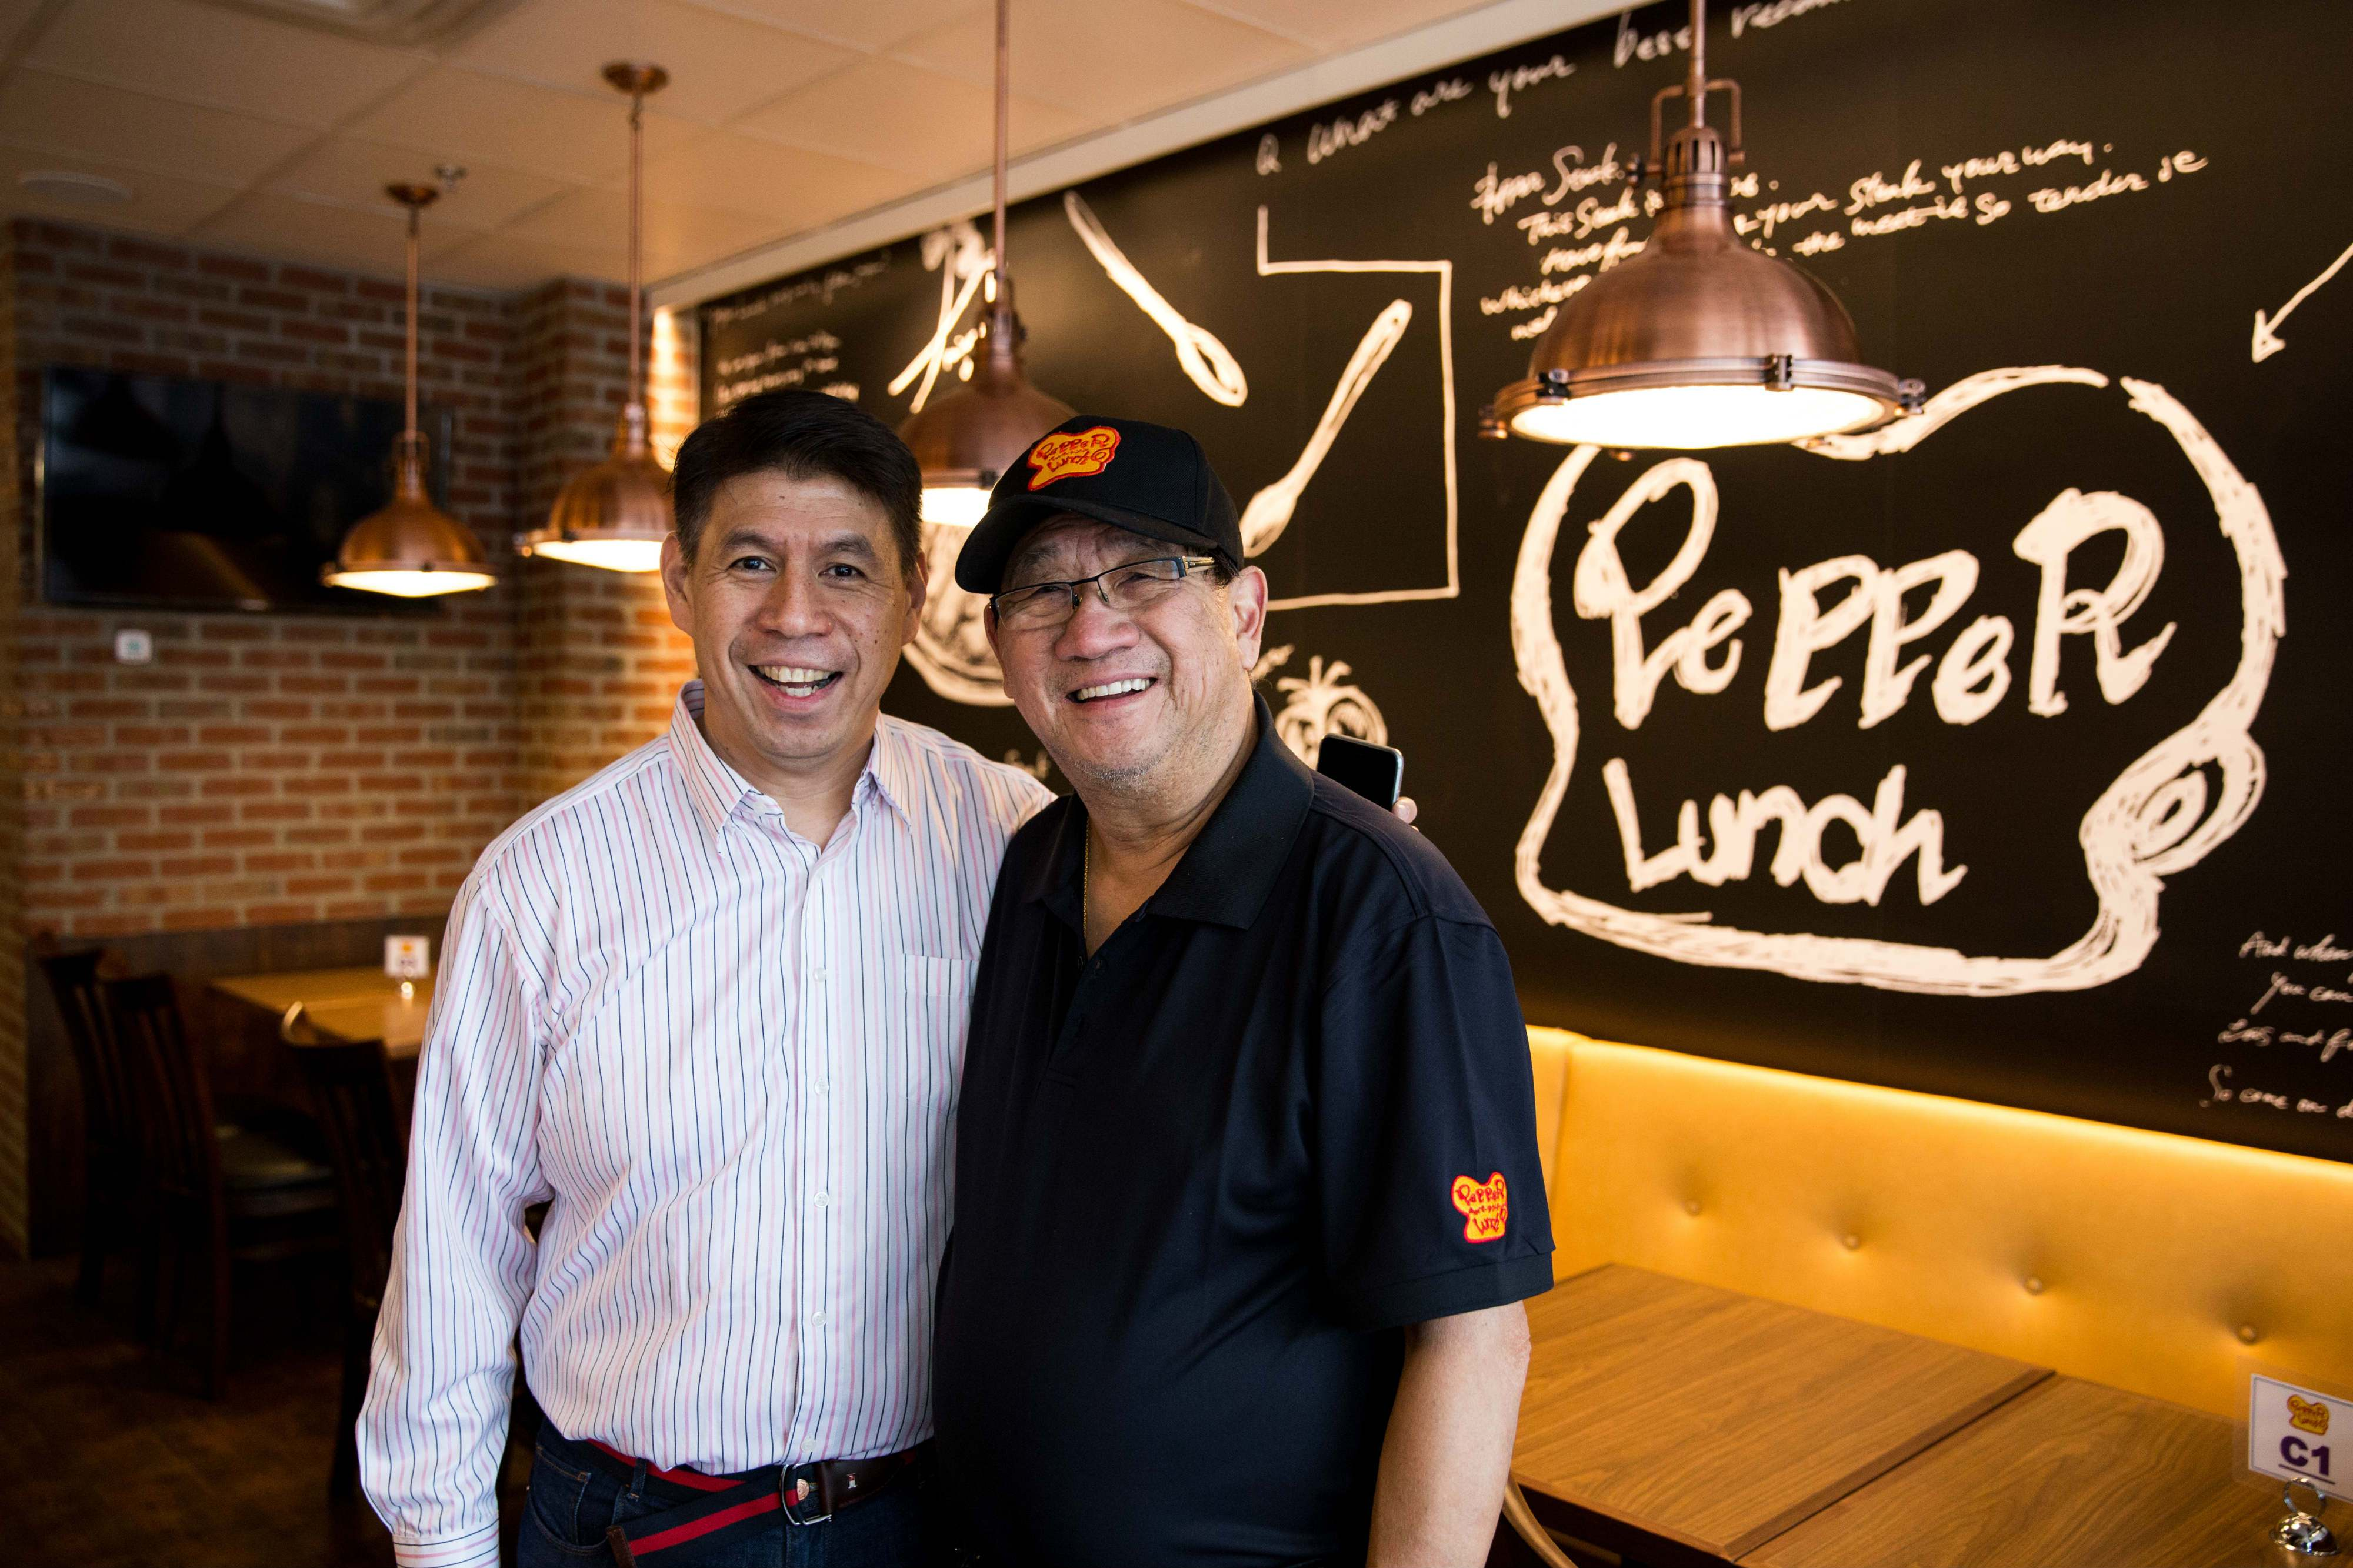 Chris and Denis Sy - Franchise owners of Pepper Lunch Canada_web